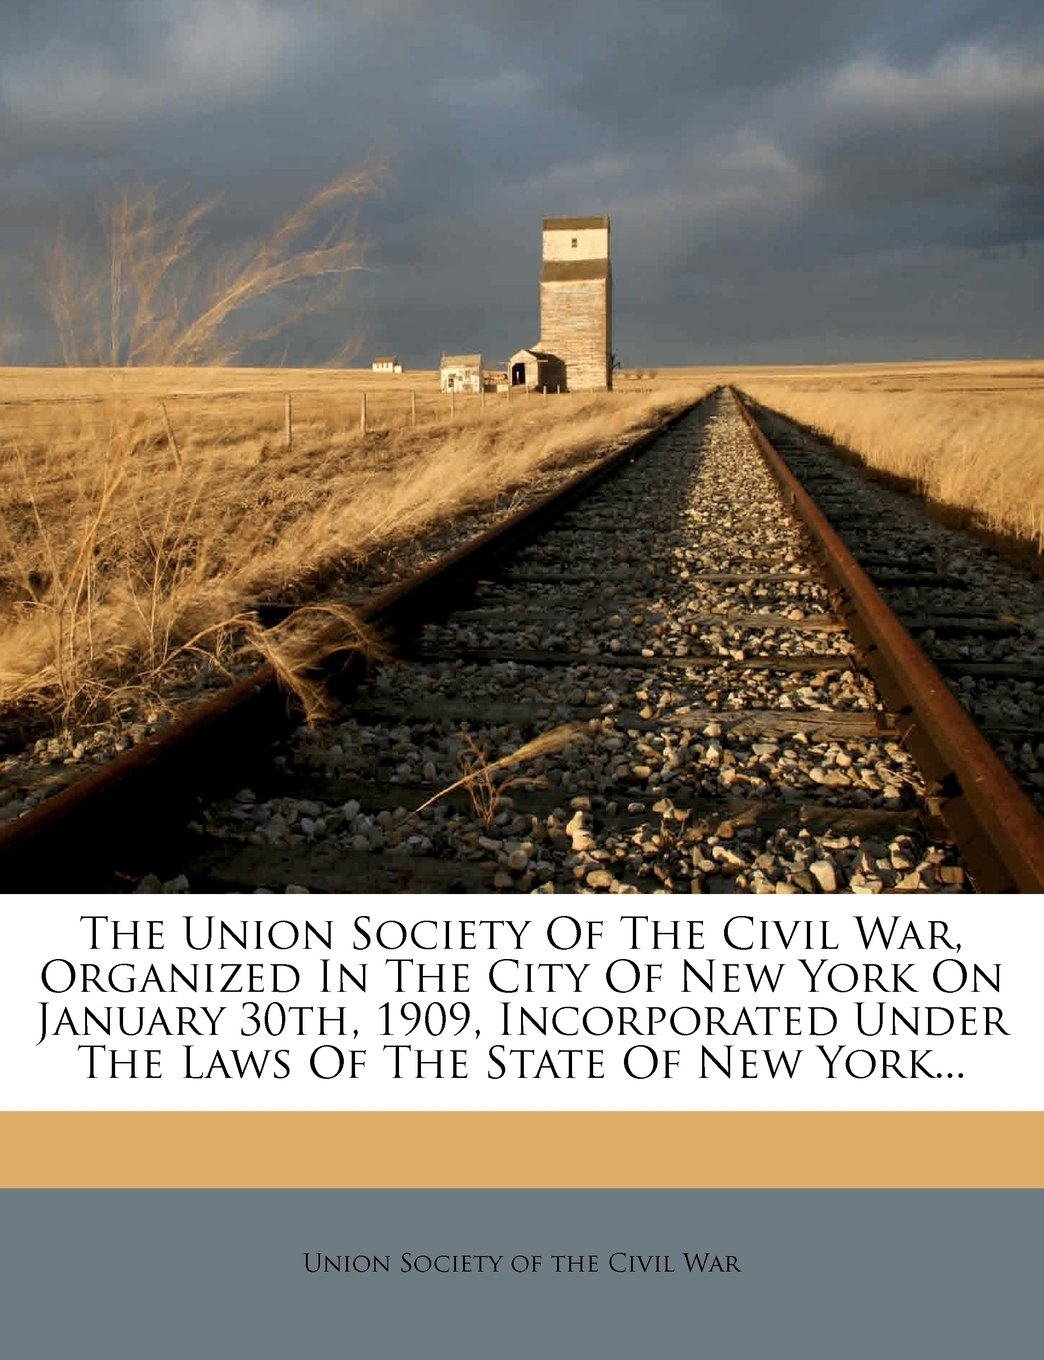 Read Online The Union Society Of The Civil War, Organized In The City Of New York On January 30th, 1909, Incorporated Under The Laws Of The State Of New York... PDF